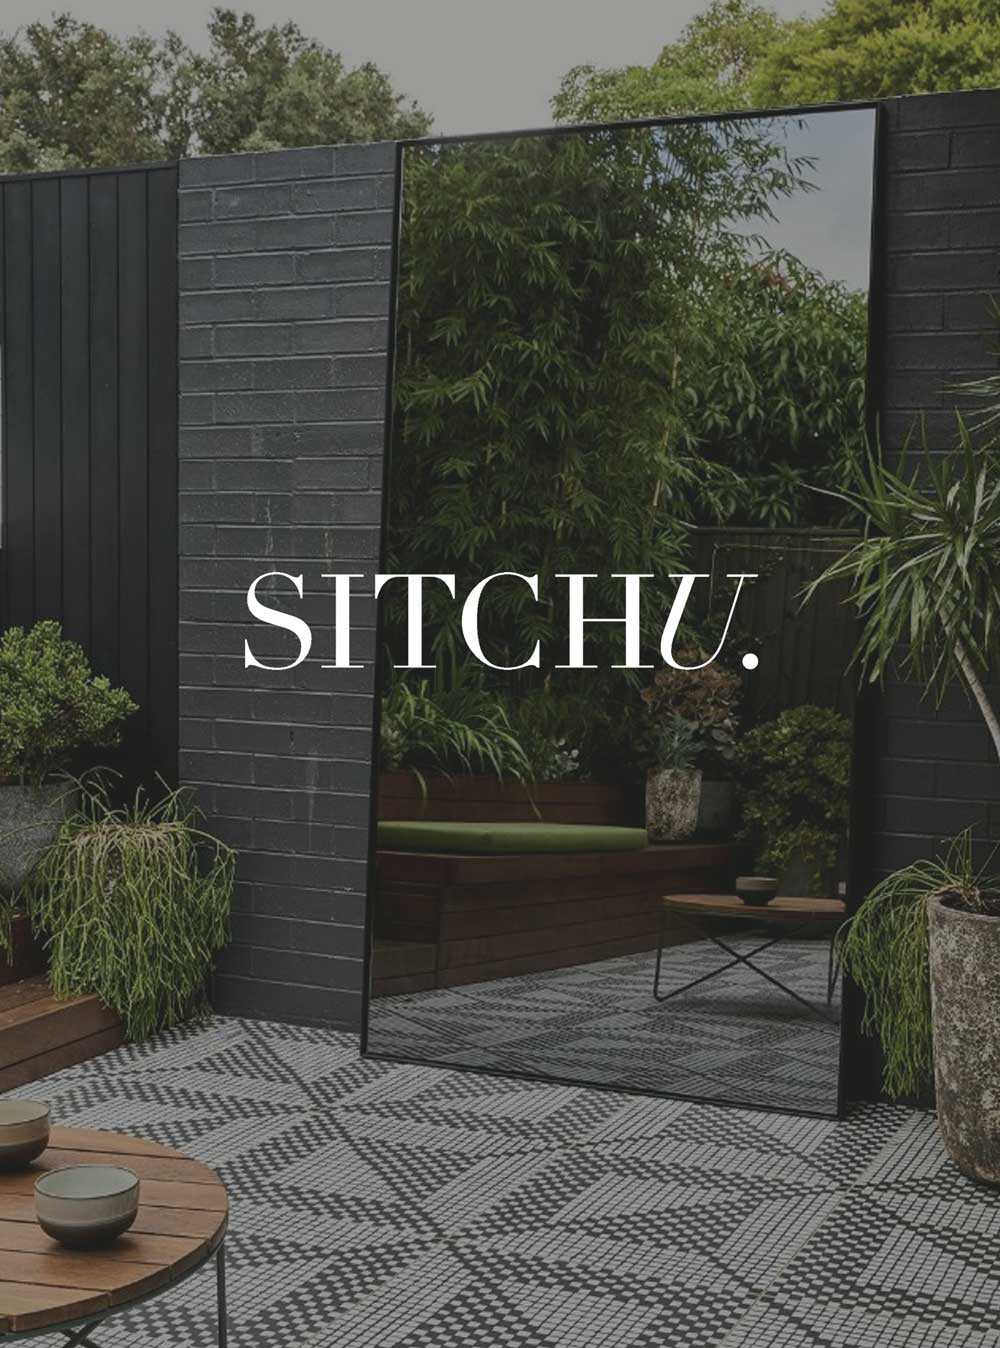 Sitchu Sydney - 'How to make the most of your small garden space'Aug 30, 2019